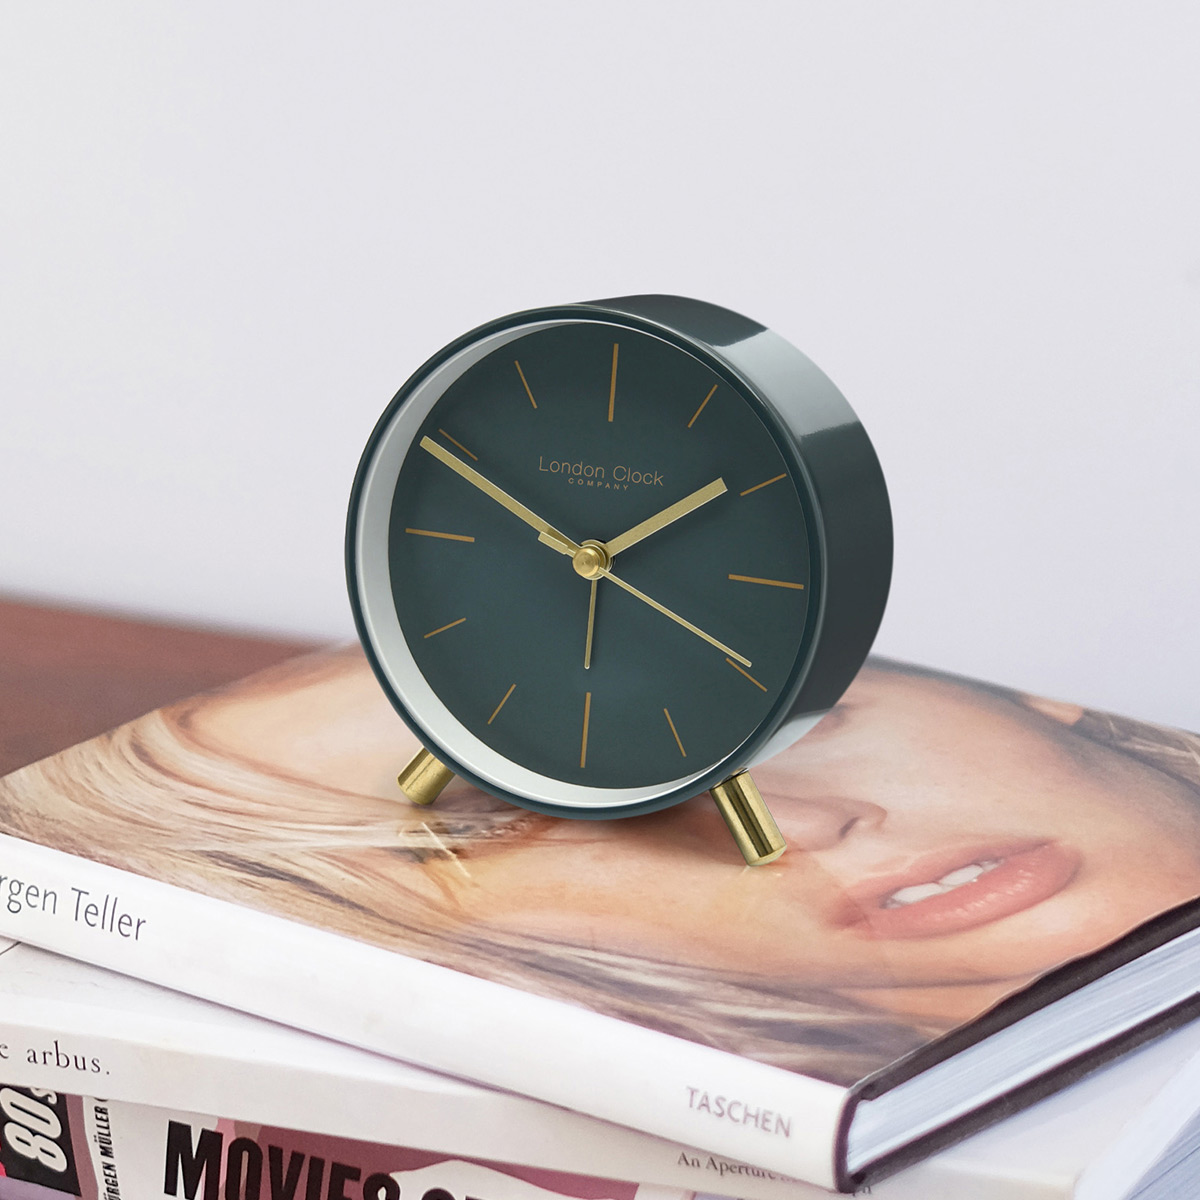 London Clock Co. Mini Desk Clock